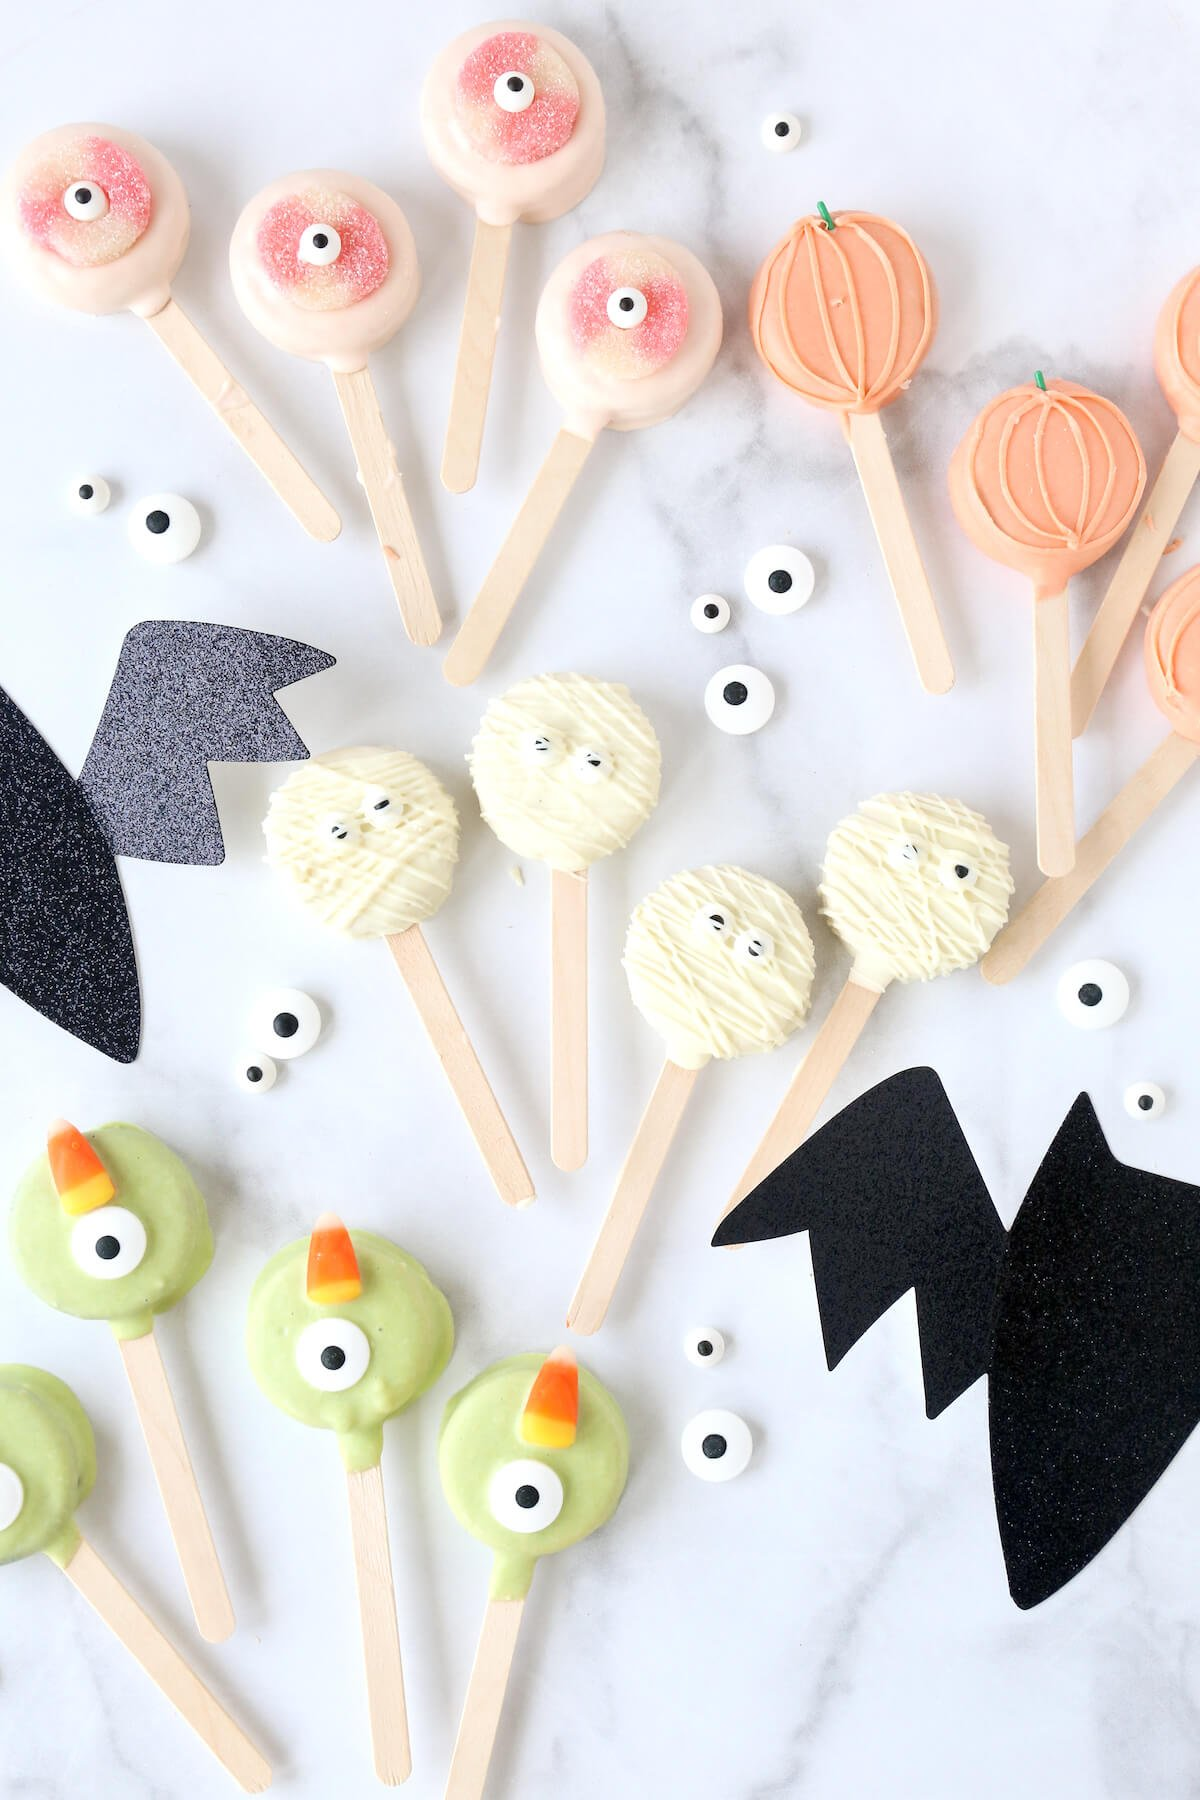 Oreos on popsicle sticks, dipped in chocolate with candy eyes.